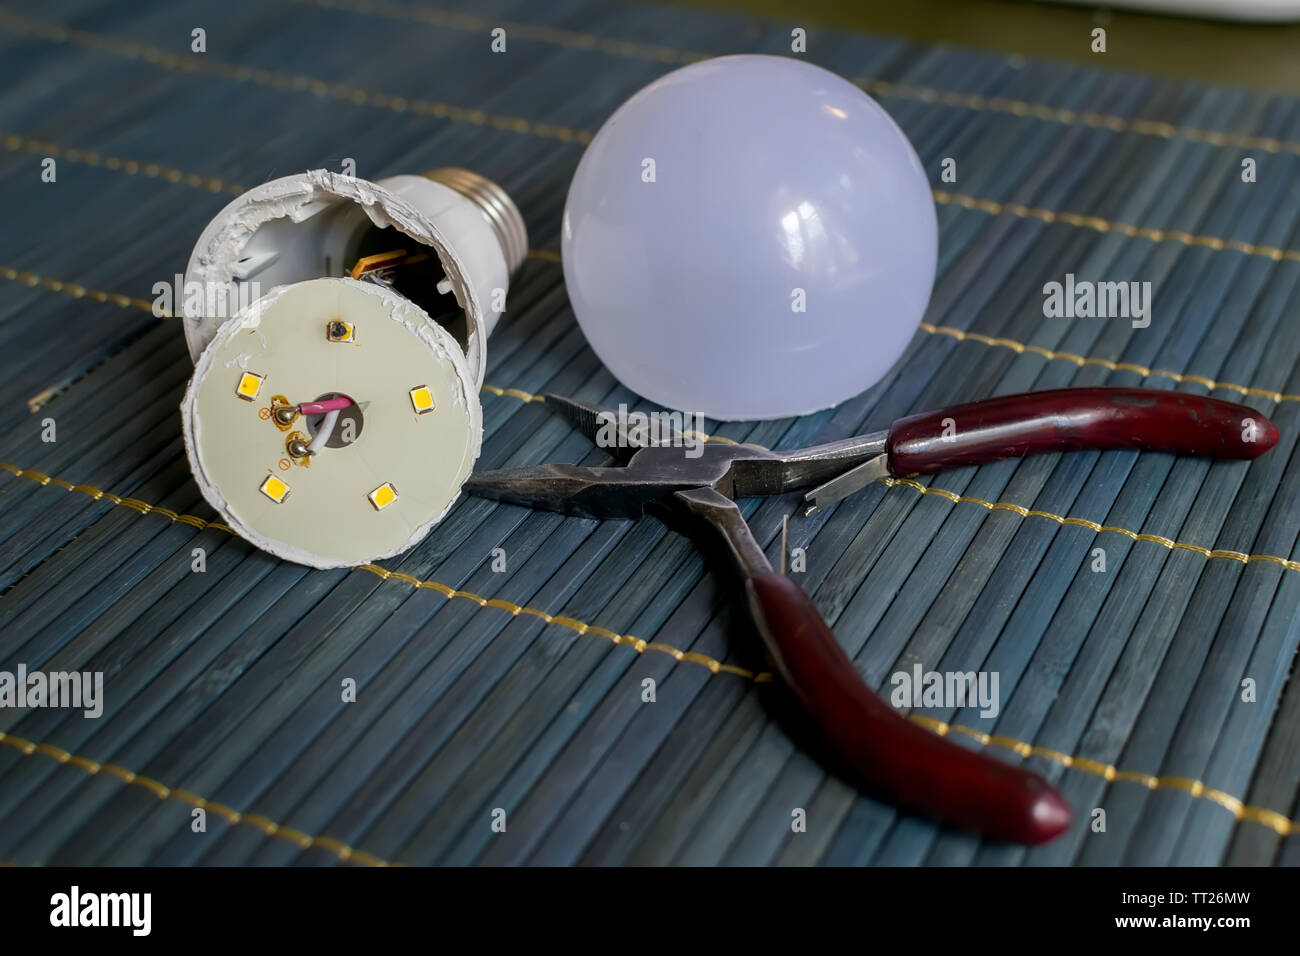 disassembled led household lamp with a burnt led element is on the table next to the pliers - Stock Image